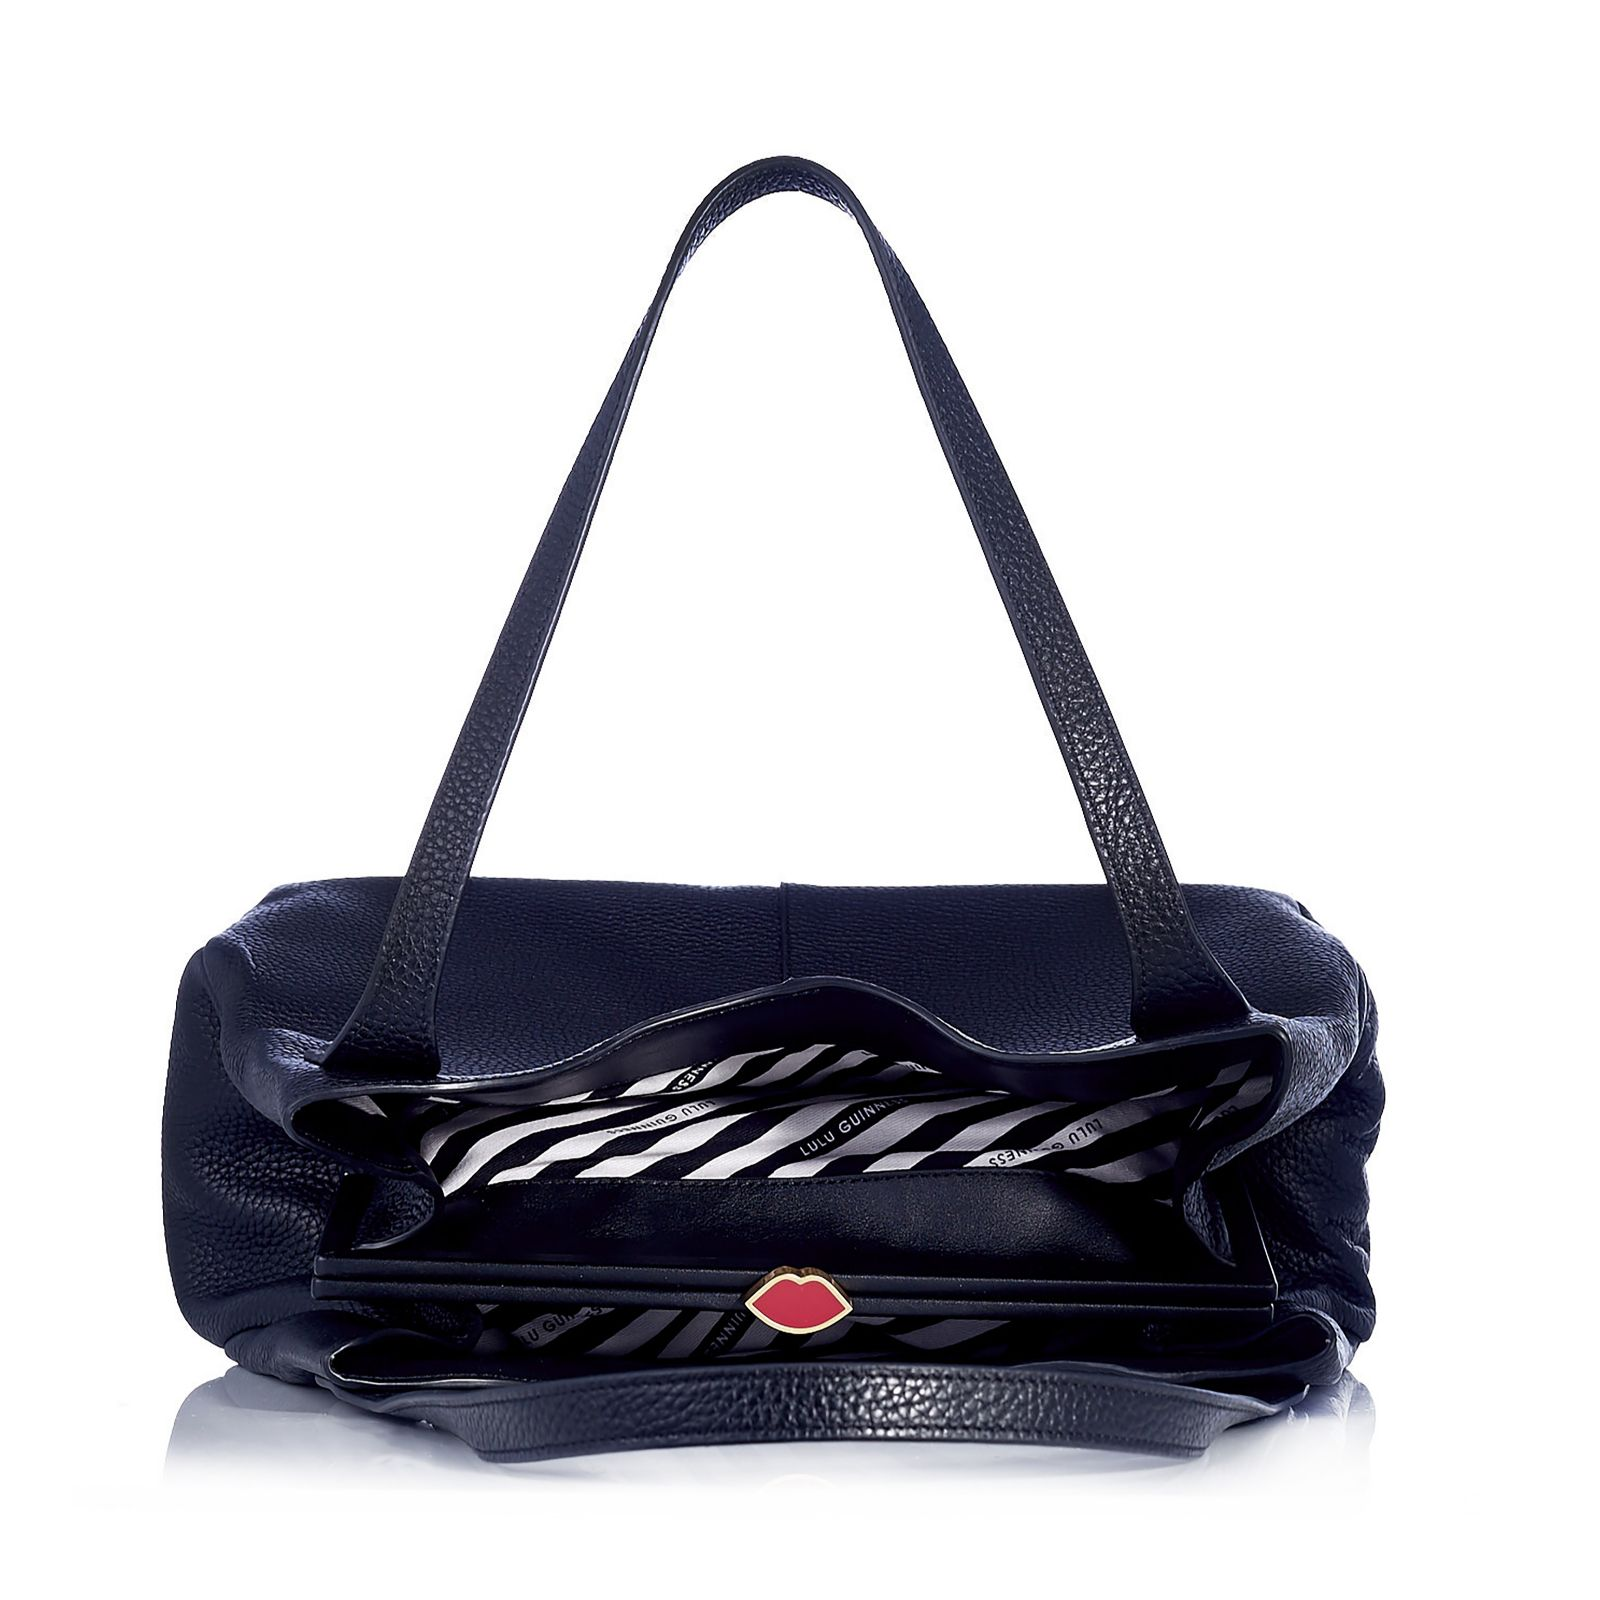 Molton Brown Bath And Shower Lulu Guinness Jackie Leather Shoulder Bag Qvc Uk